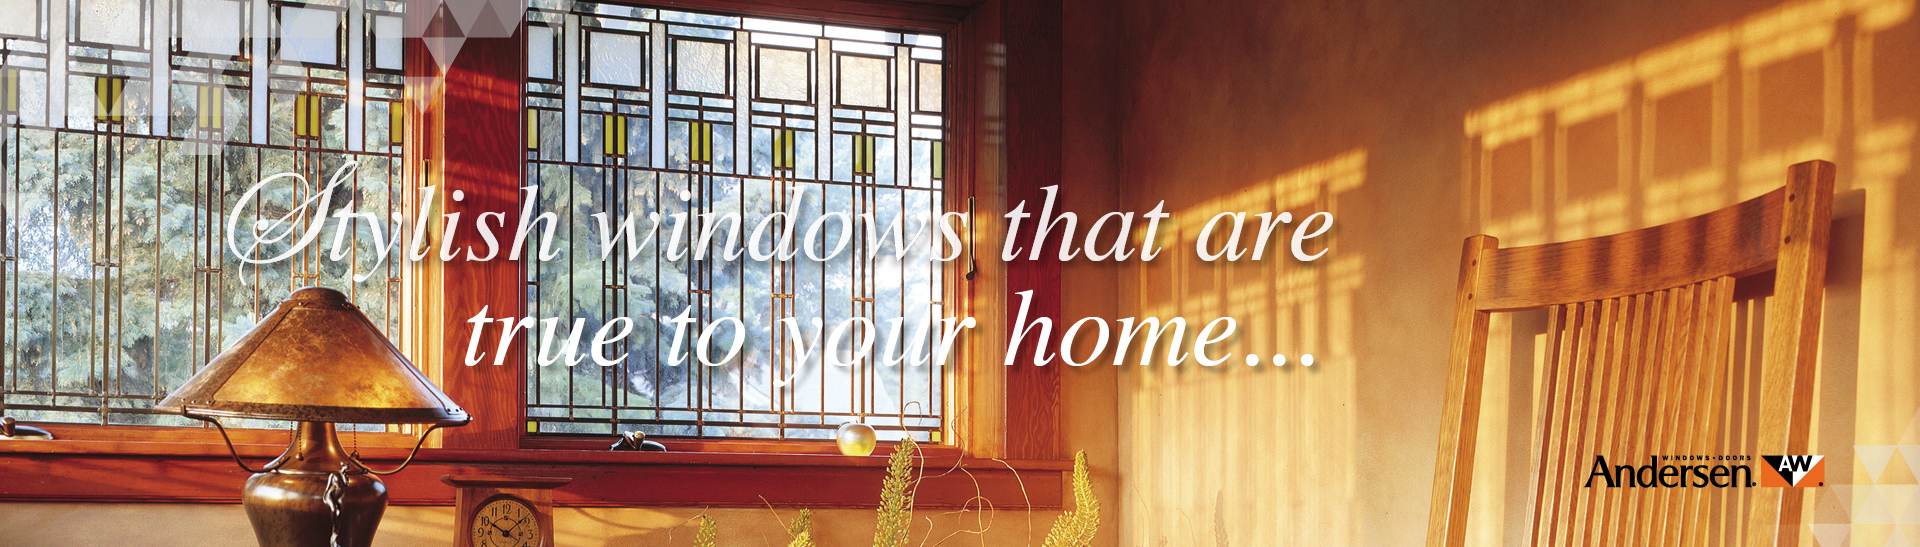 Stylish windows that are true to your home